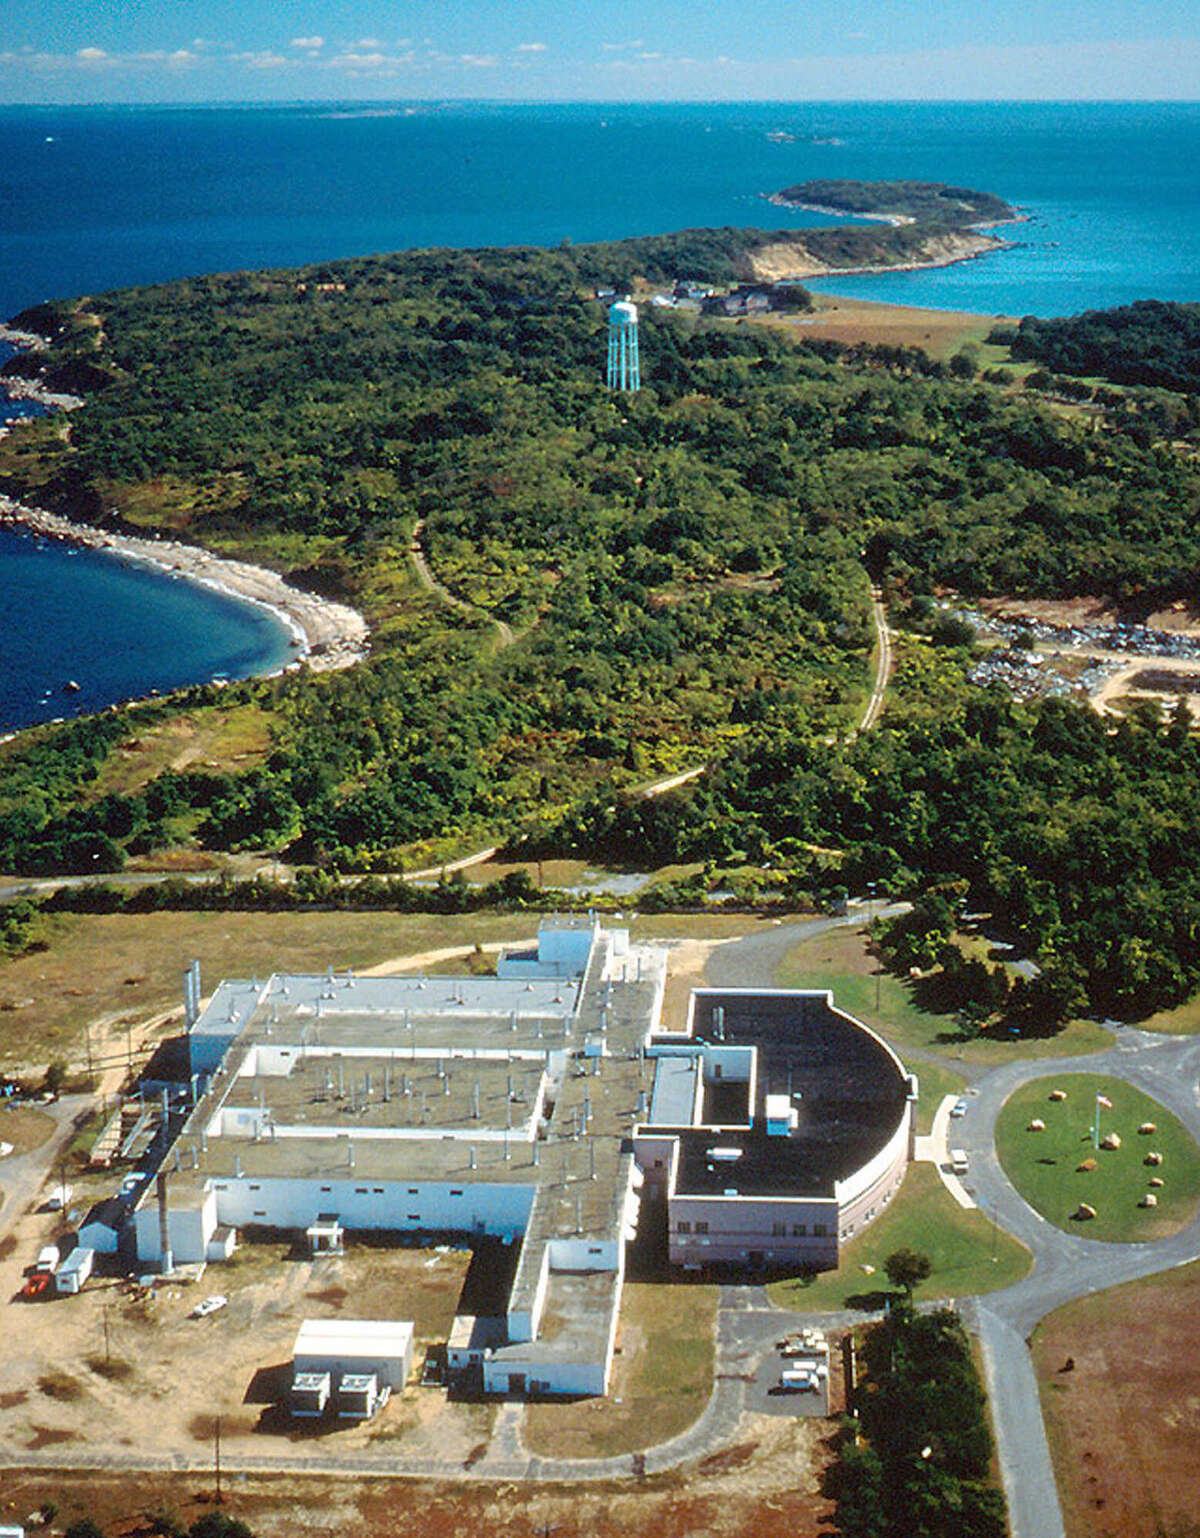 In this undated photo provided by the Agricultural Research Service of the Department of Agriculture, Plum Island Animal Disease Center, off the coast of New York?'s Long Island, is shown. The future of the mysterious island where infectious animal diseases have been studied since the 1950s is about to gain renewed focus. One federal agency is preparing a final report on Plum Island's proposed sale at the same time Long Island officials consider new zoning laws that will prevent any significant development of the 843-acre property should it be sold. (AP Photo/ARS-USDA)